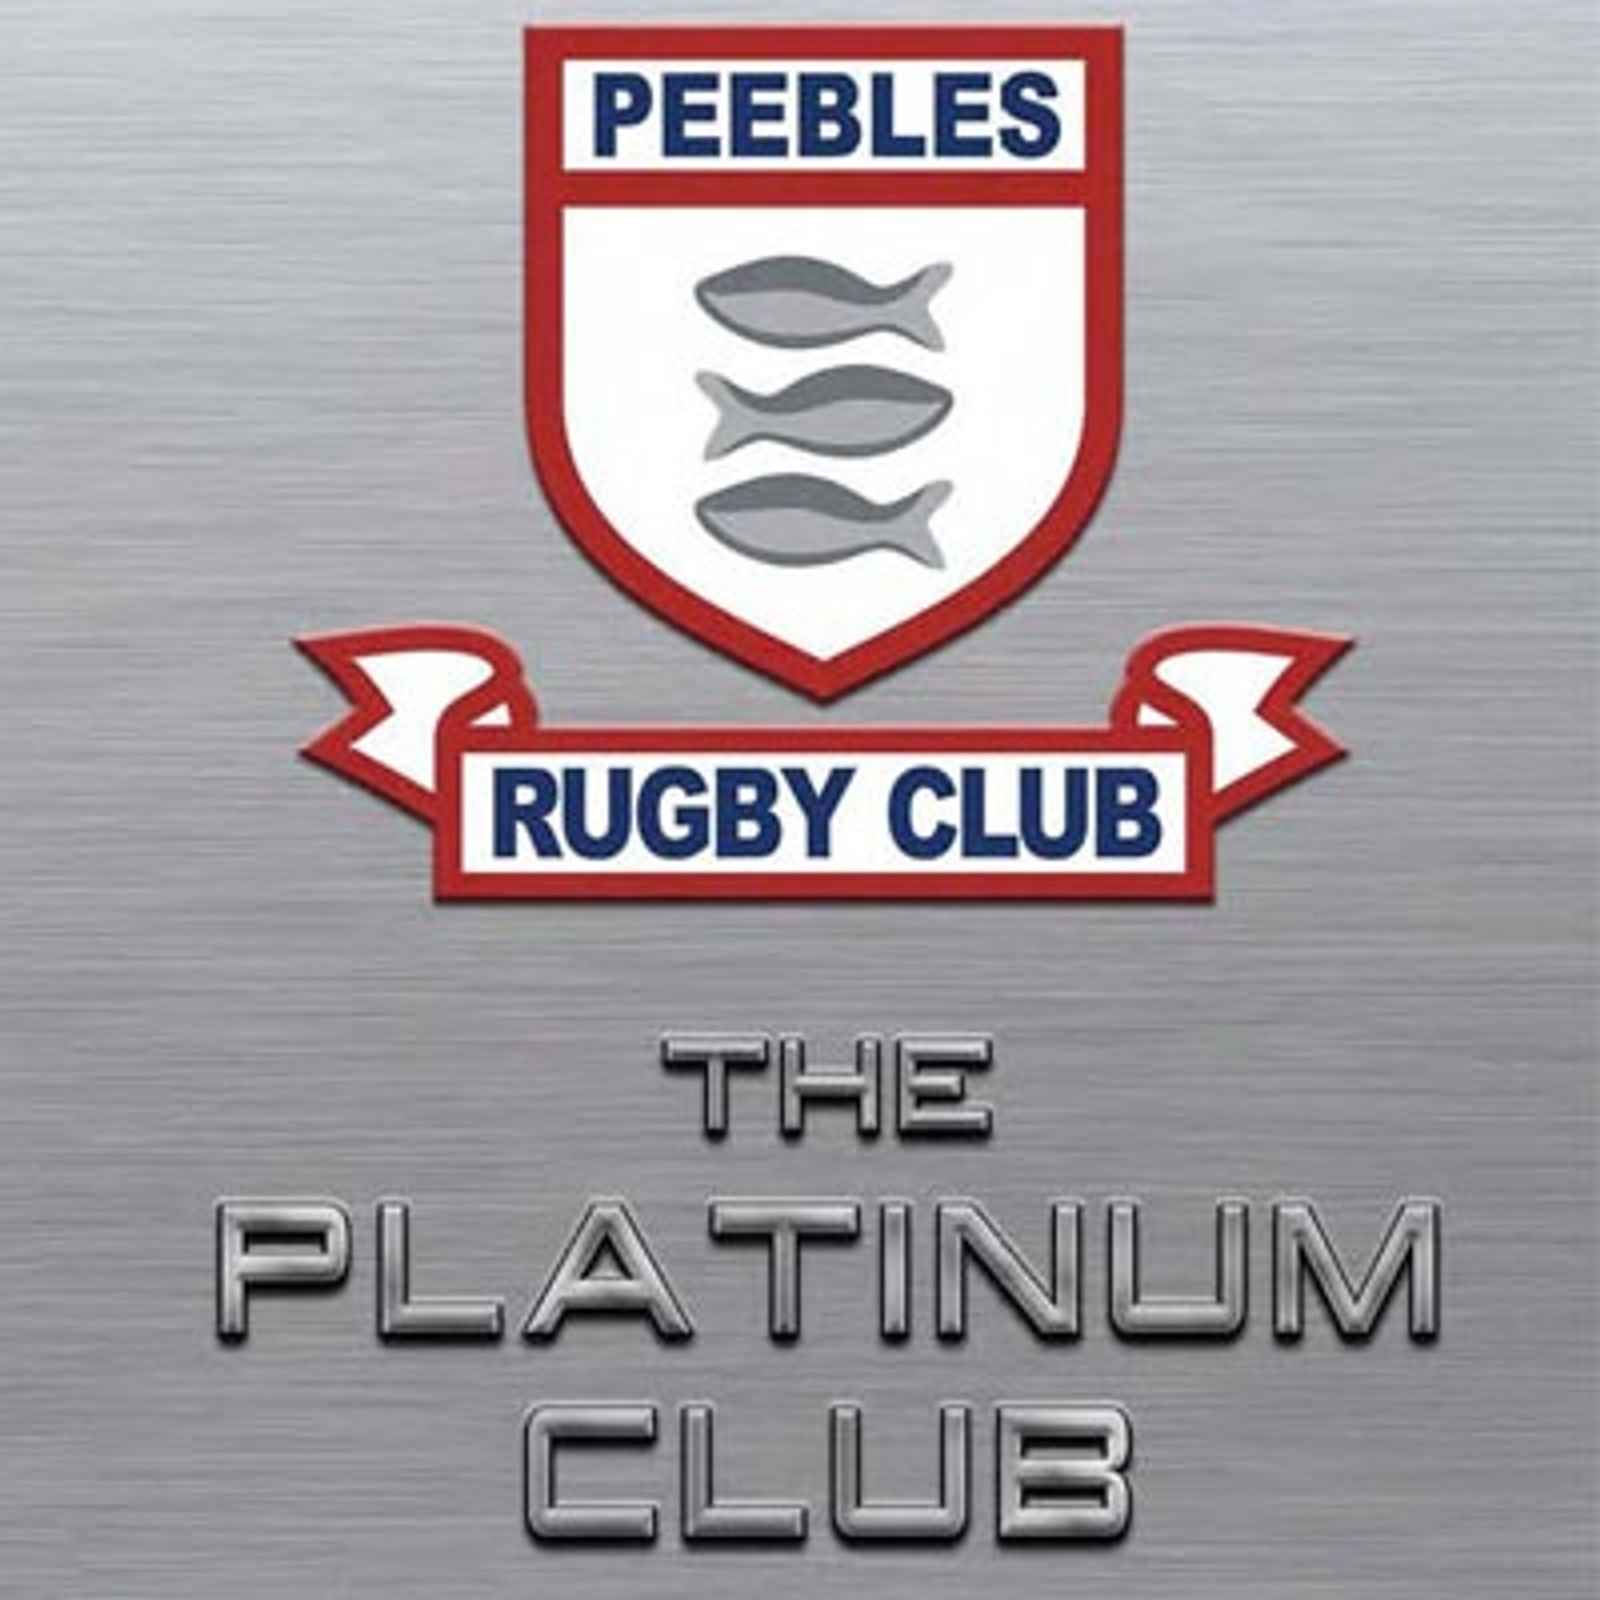 Platinum Club Winners for May 2016